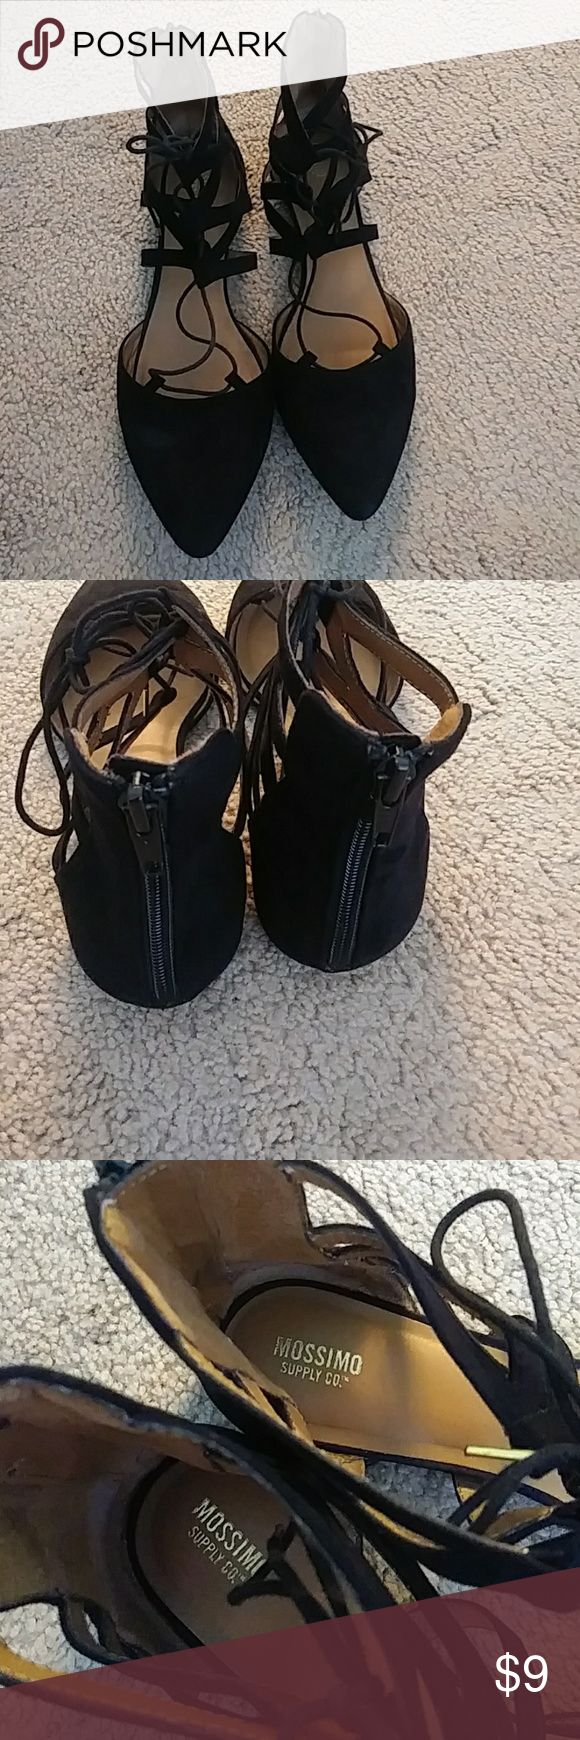 Lace up ballerina shoes Flats Black flats lace up ballerina shoes in good condition size 11 Shoes Flats & Loafers